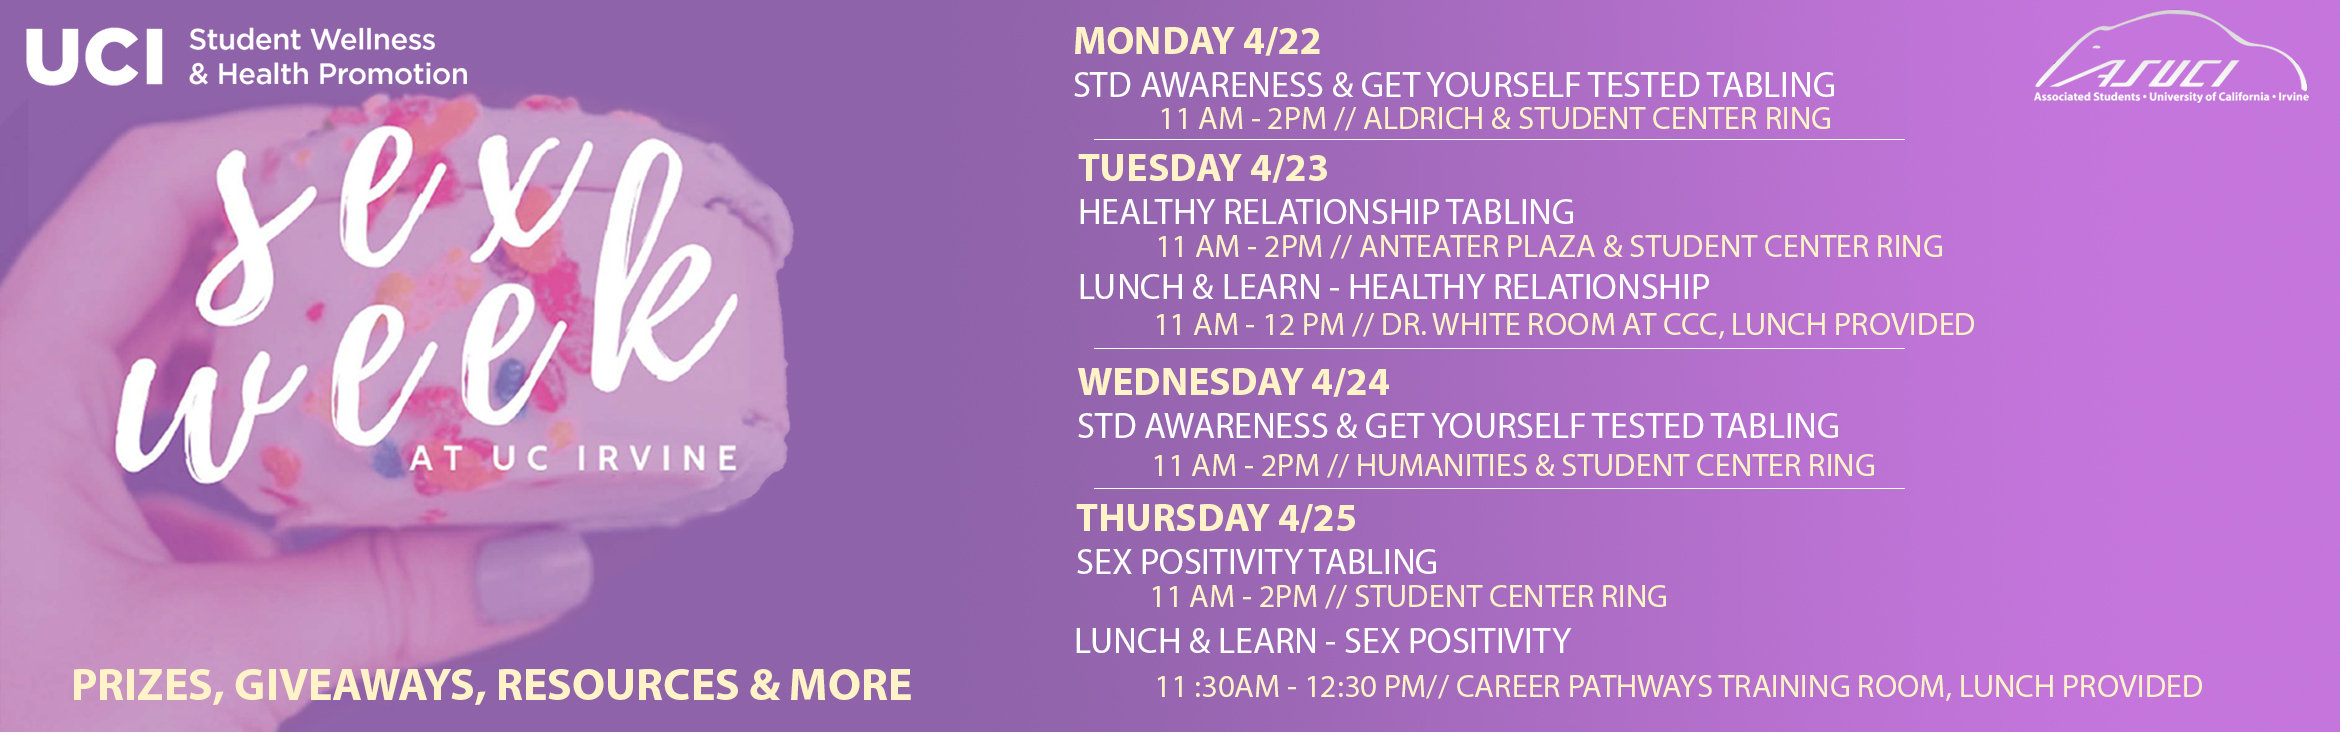 Sex Week at UC Irvine Monday 4/22 STD awareness & get yourself tested tabling 11 AM - 2PM Aldrich & Student Center Ring